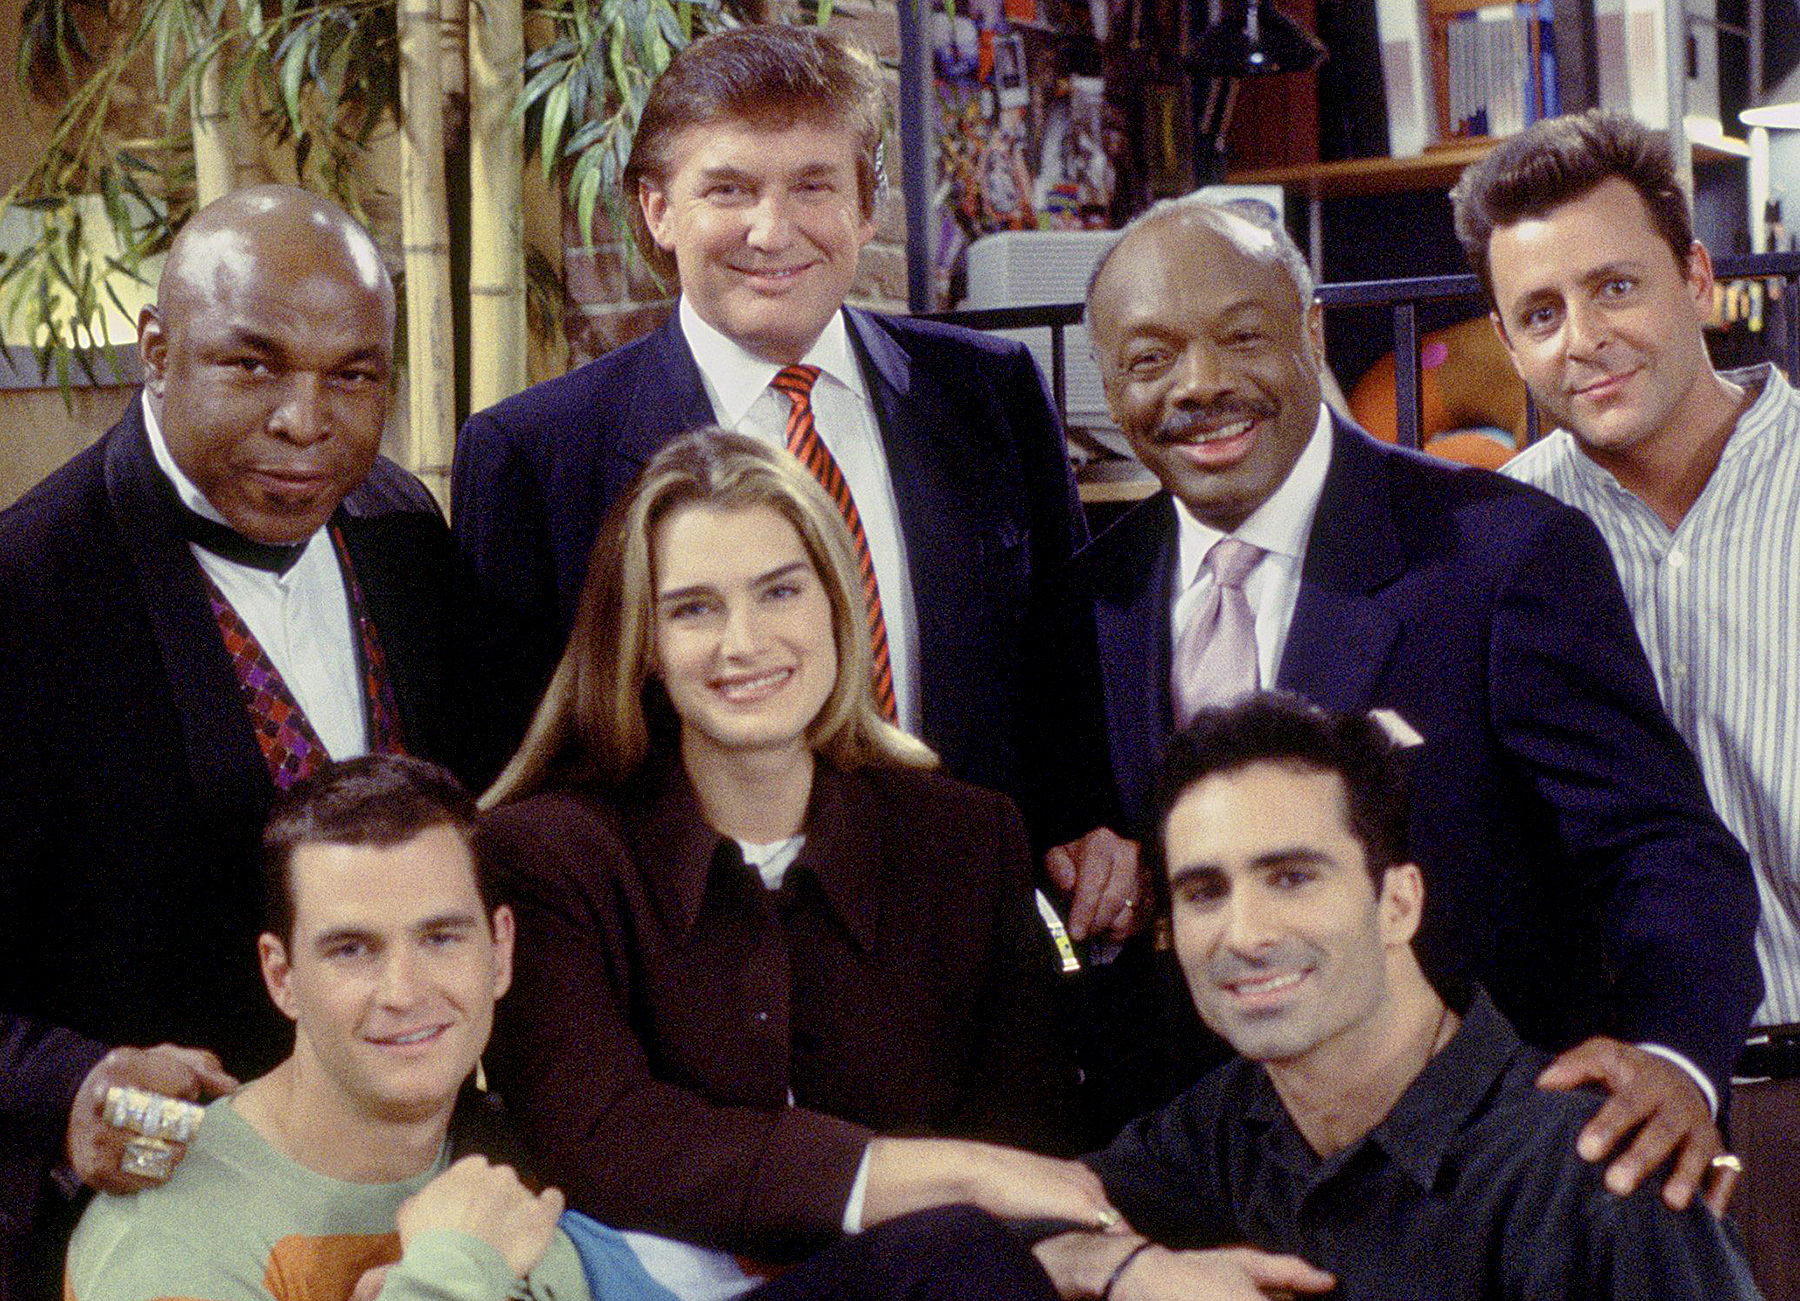 Mr. T as Himself, Donald Trump as Himself, Willie Brown as Mayor Willie Brown, Judd Nelson as Jack Richmond, (front row l-r) David Strickland as Todd Styles, Brooke Shields as Susan Keane, Nestor Carbonell as Luis Rivera on Suddenly Susan